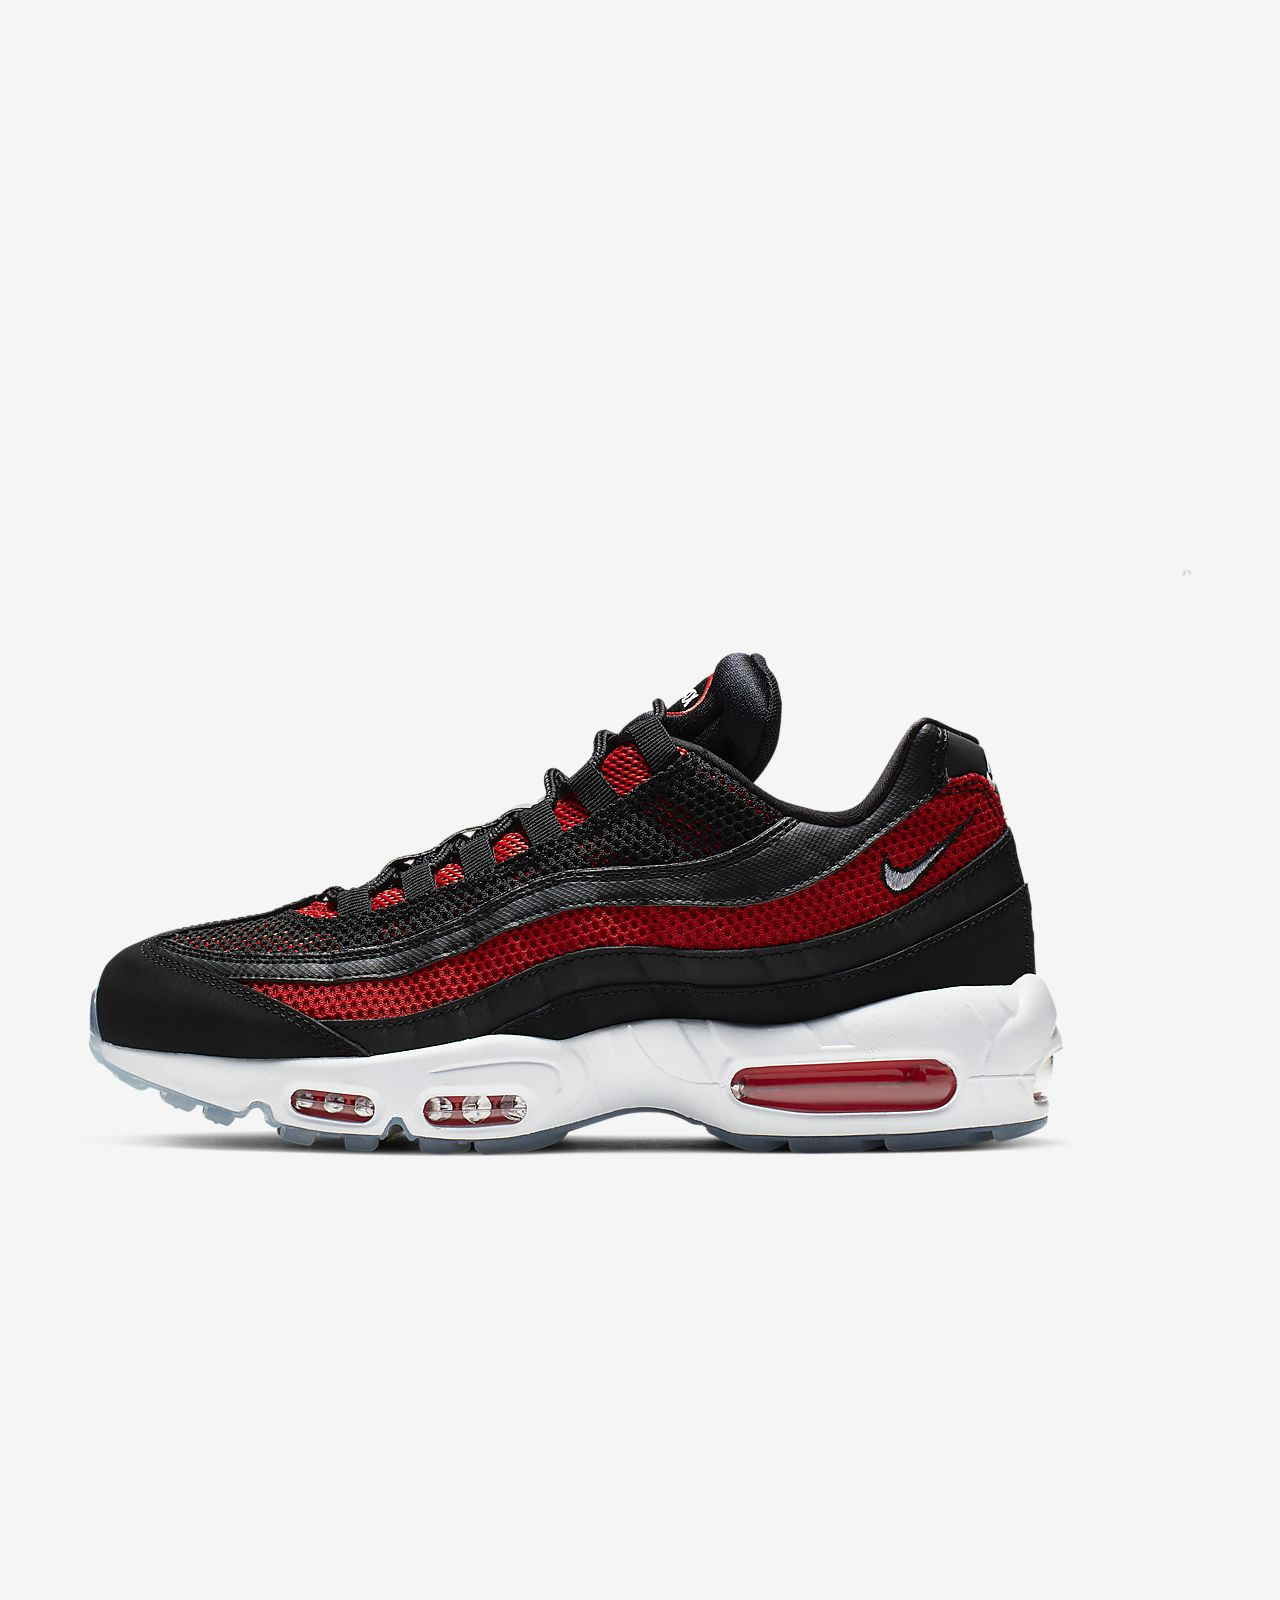 wholesale dealer 129bc a4b37 ... Chaussure Nike Air Max 95 Essential pour Homme